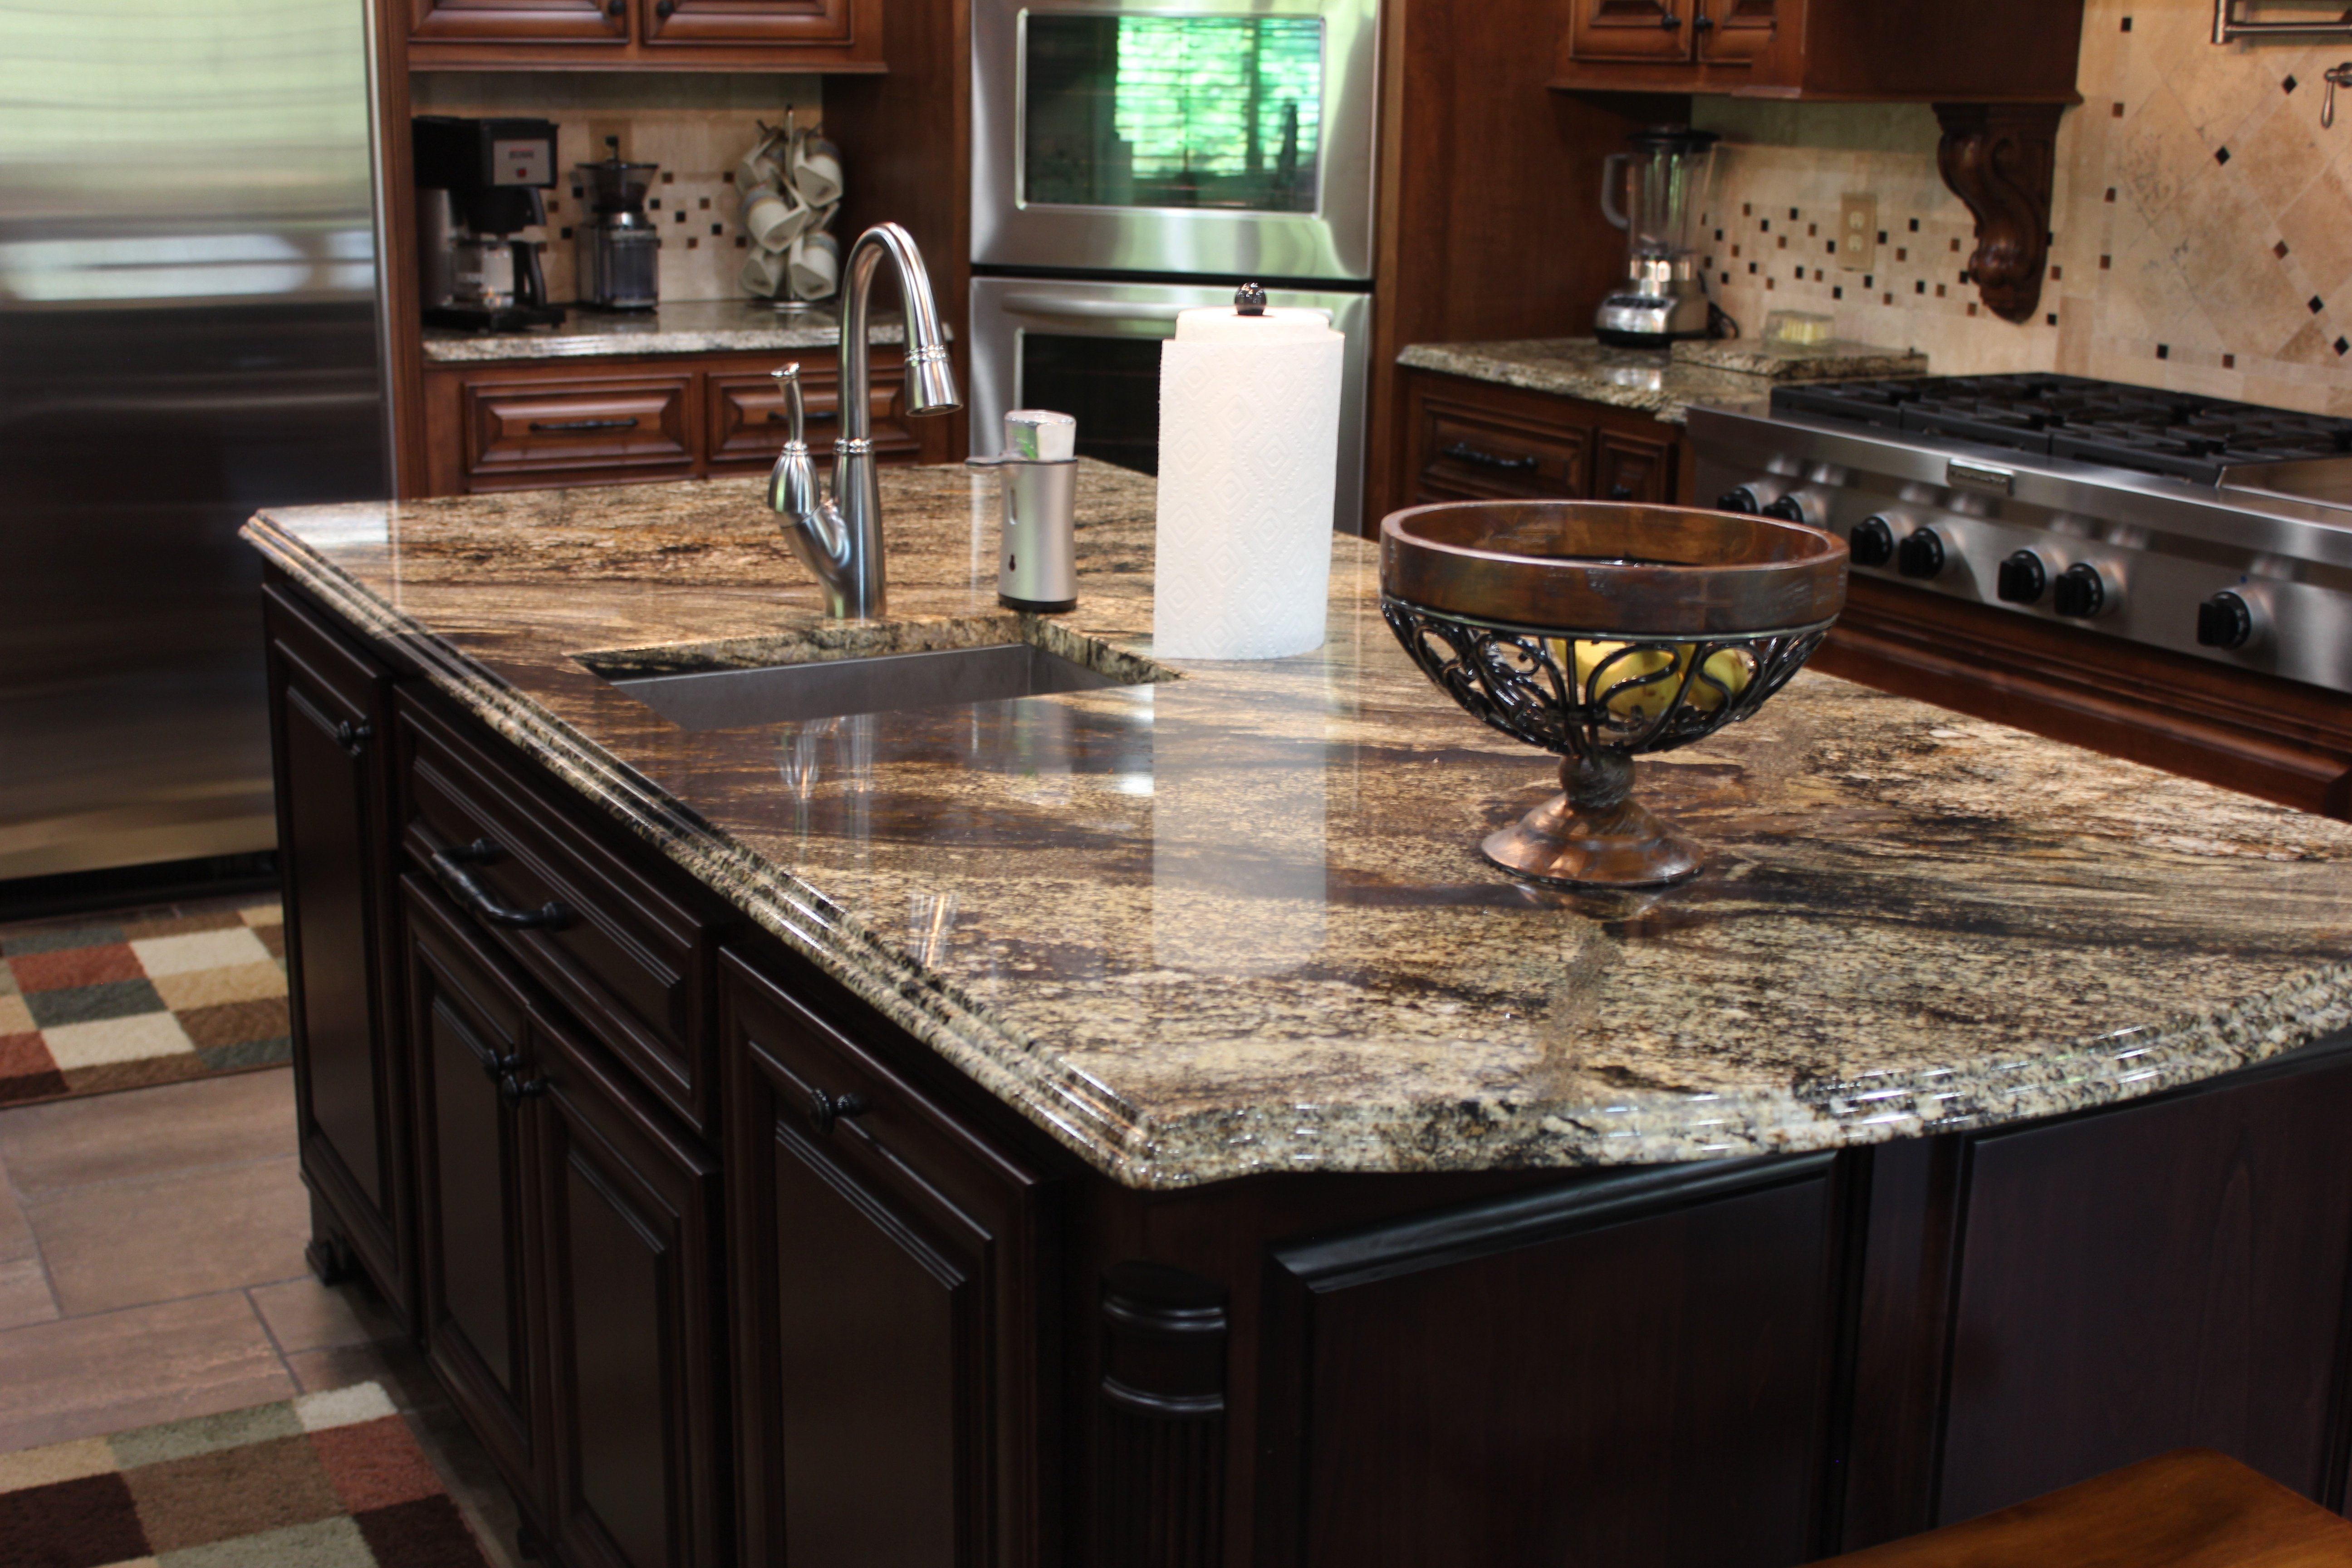 Merveilleux HOW TO CHOOSE A GRANITE COUNTERTOP COMPANY